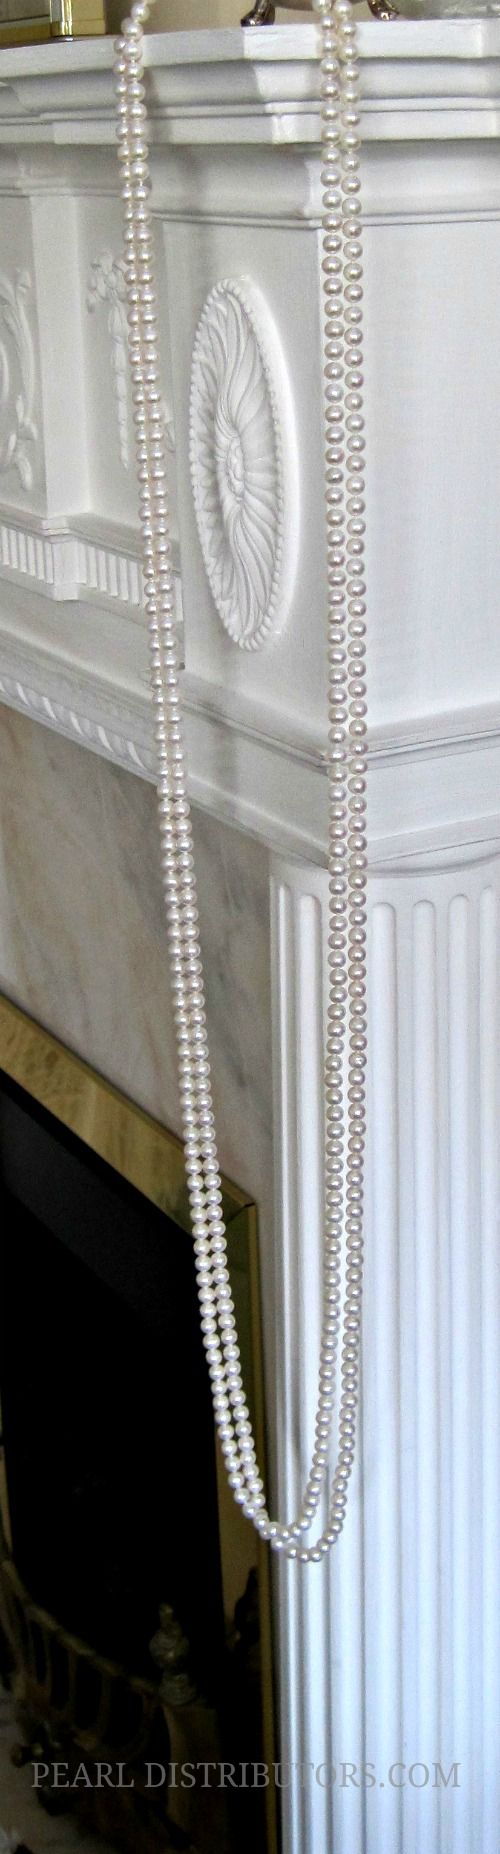 Pearls on fireplace #pearls